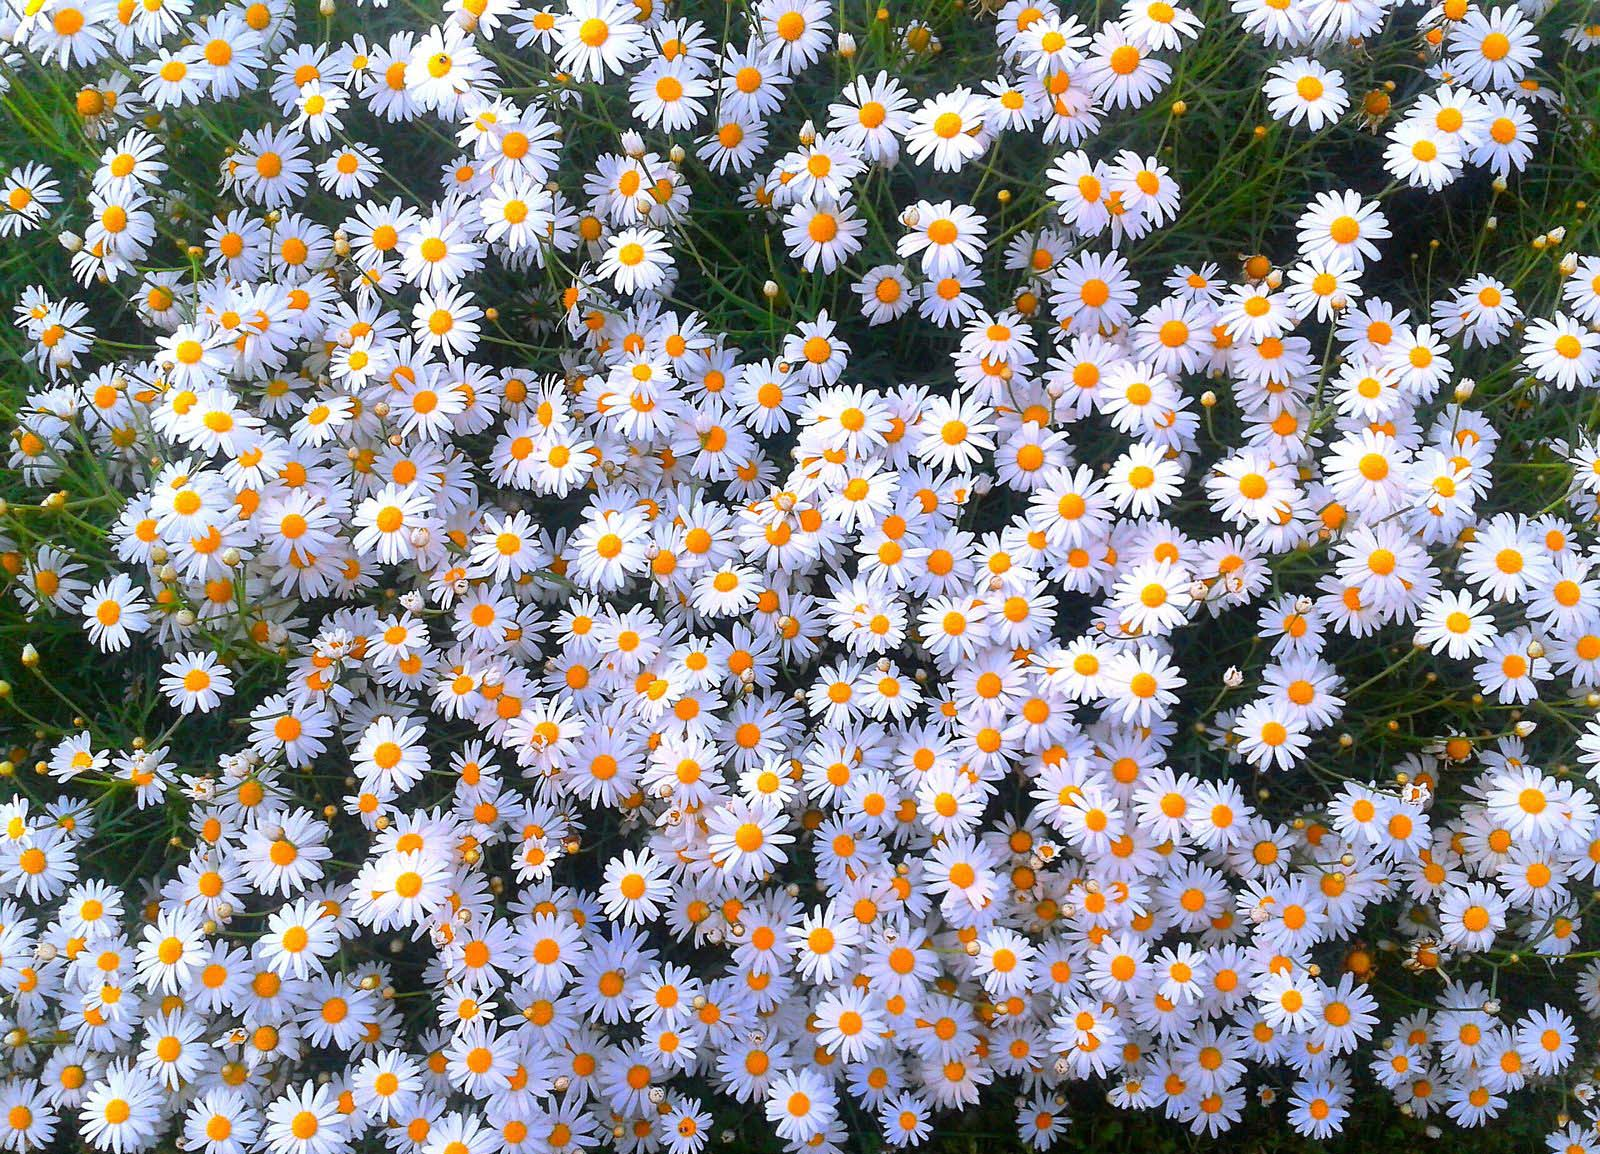 crysanthemum japonese daisy bunch flower images free